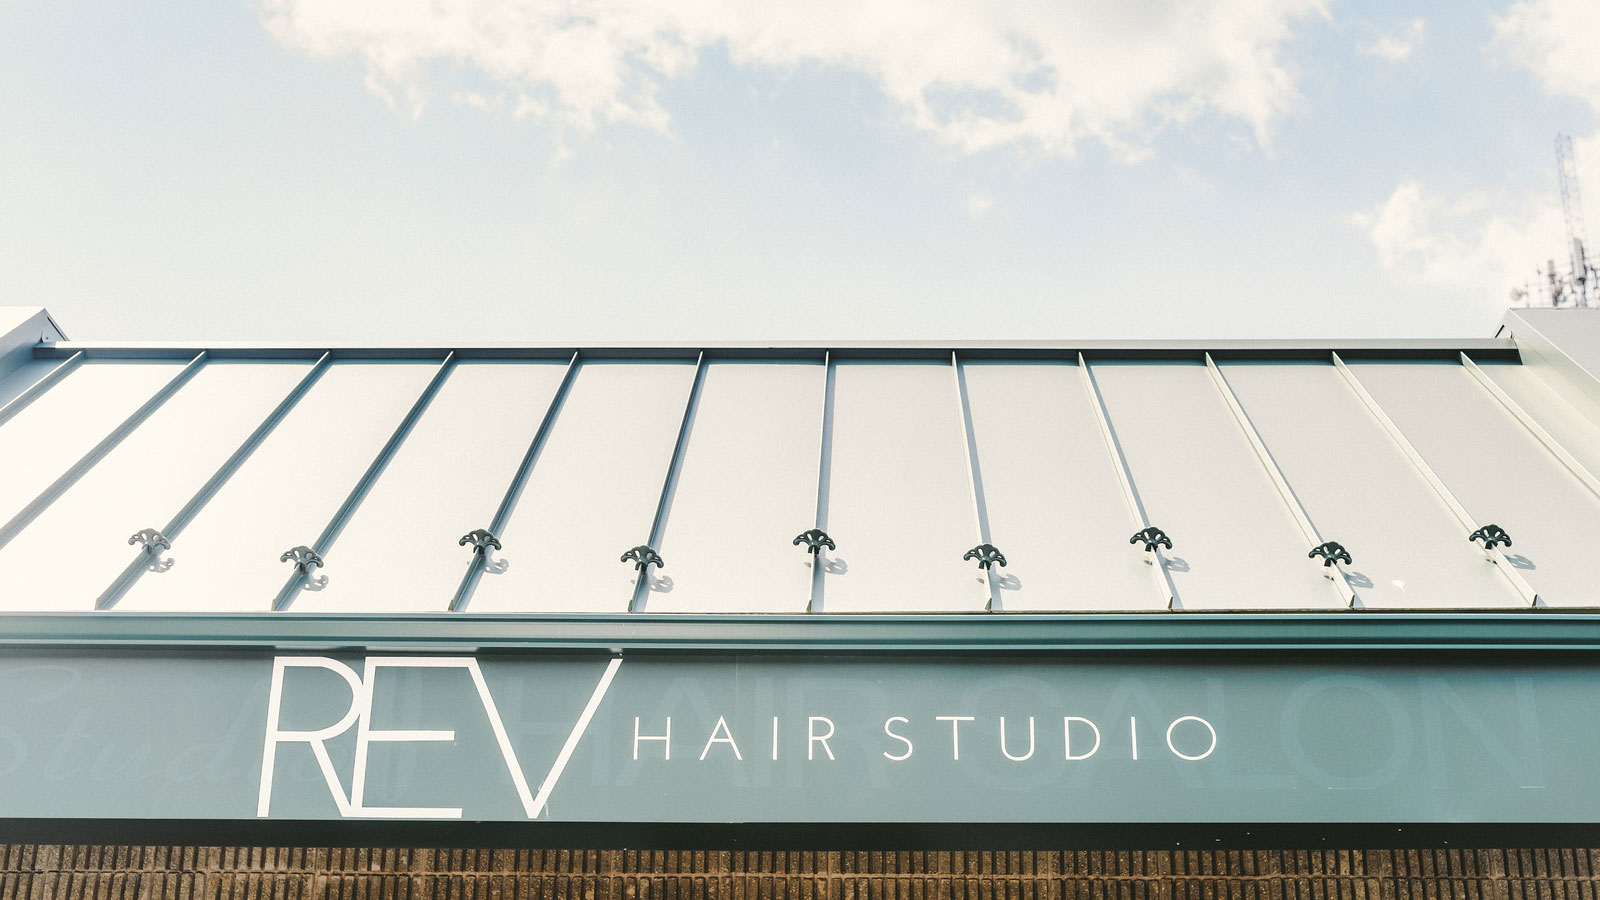 REV Hair Studio